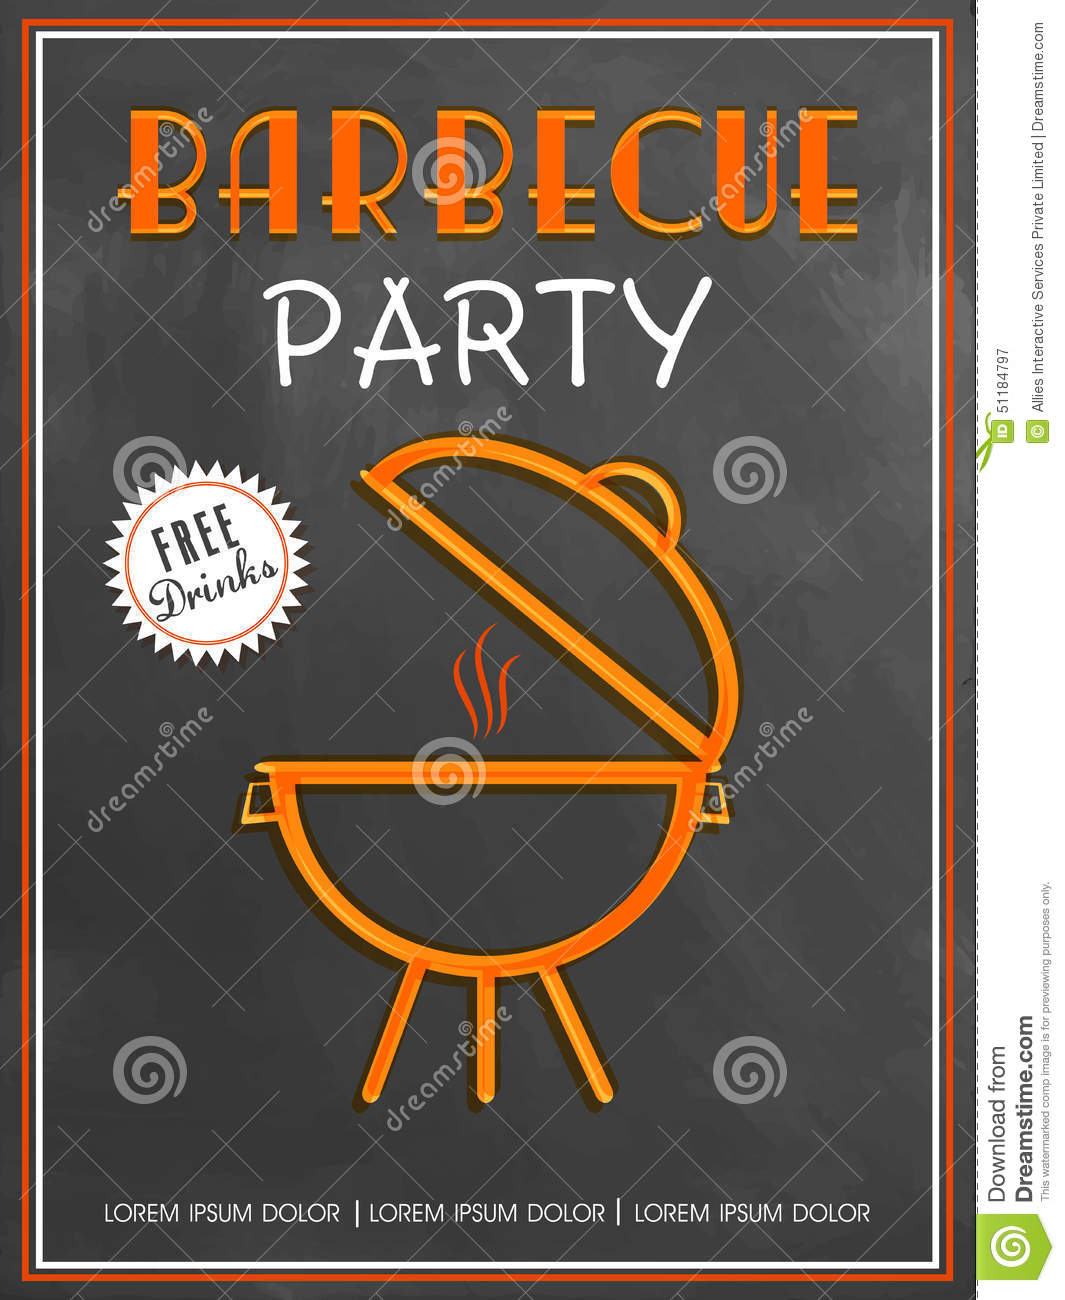 menu card design for barbecue party  stock illustration